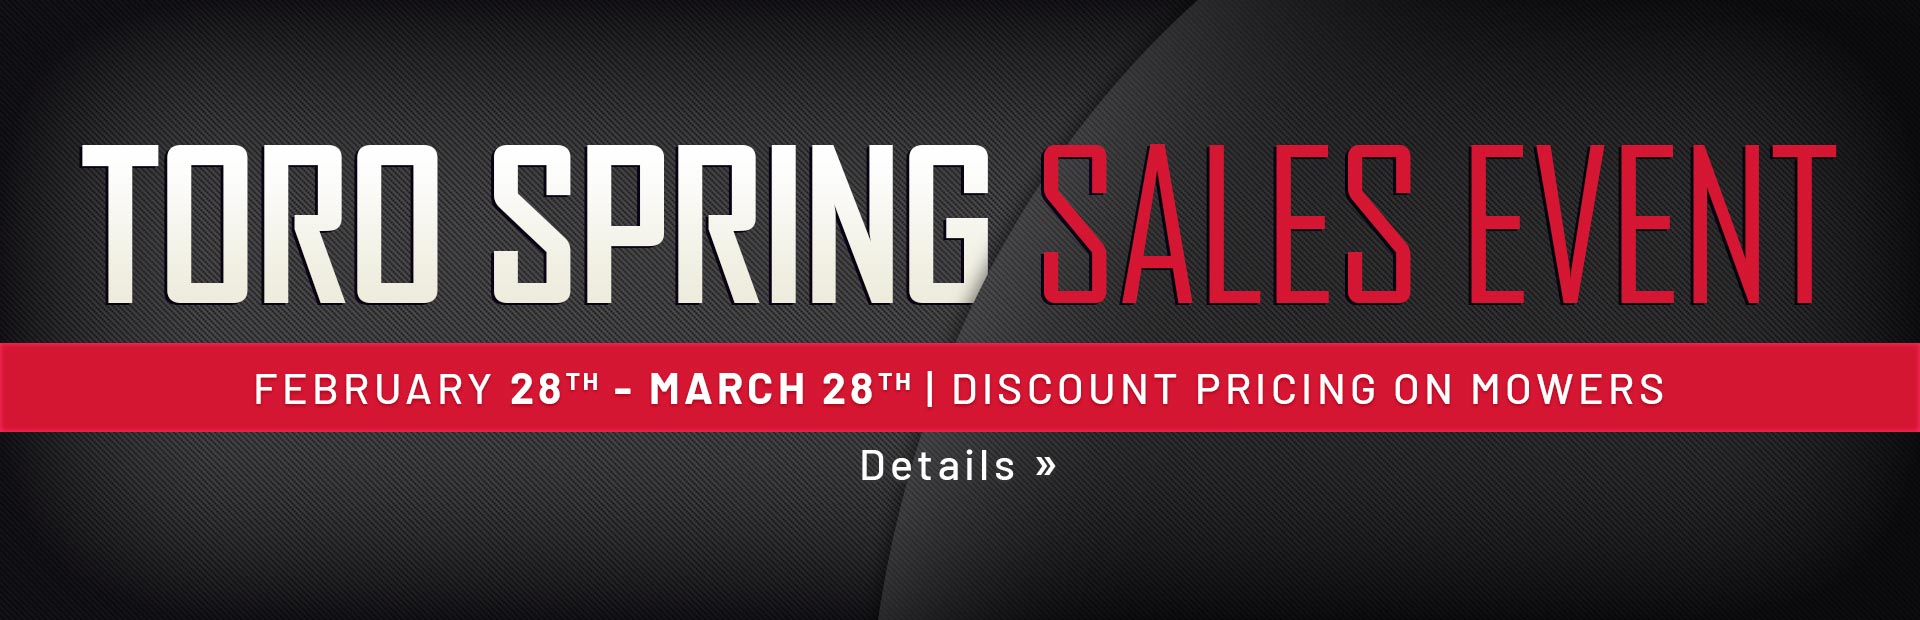 Toro Spring Sales Event Feb 28th through March 28th: Discount pricing on mowers. Click for details.